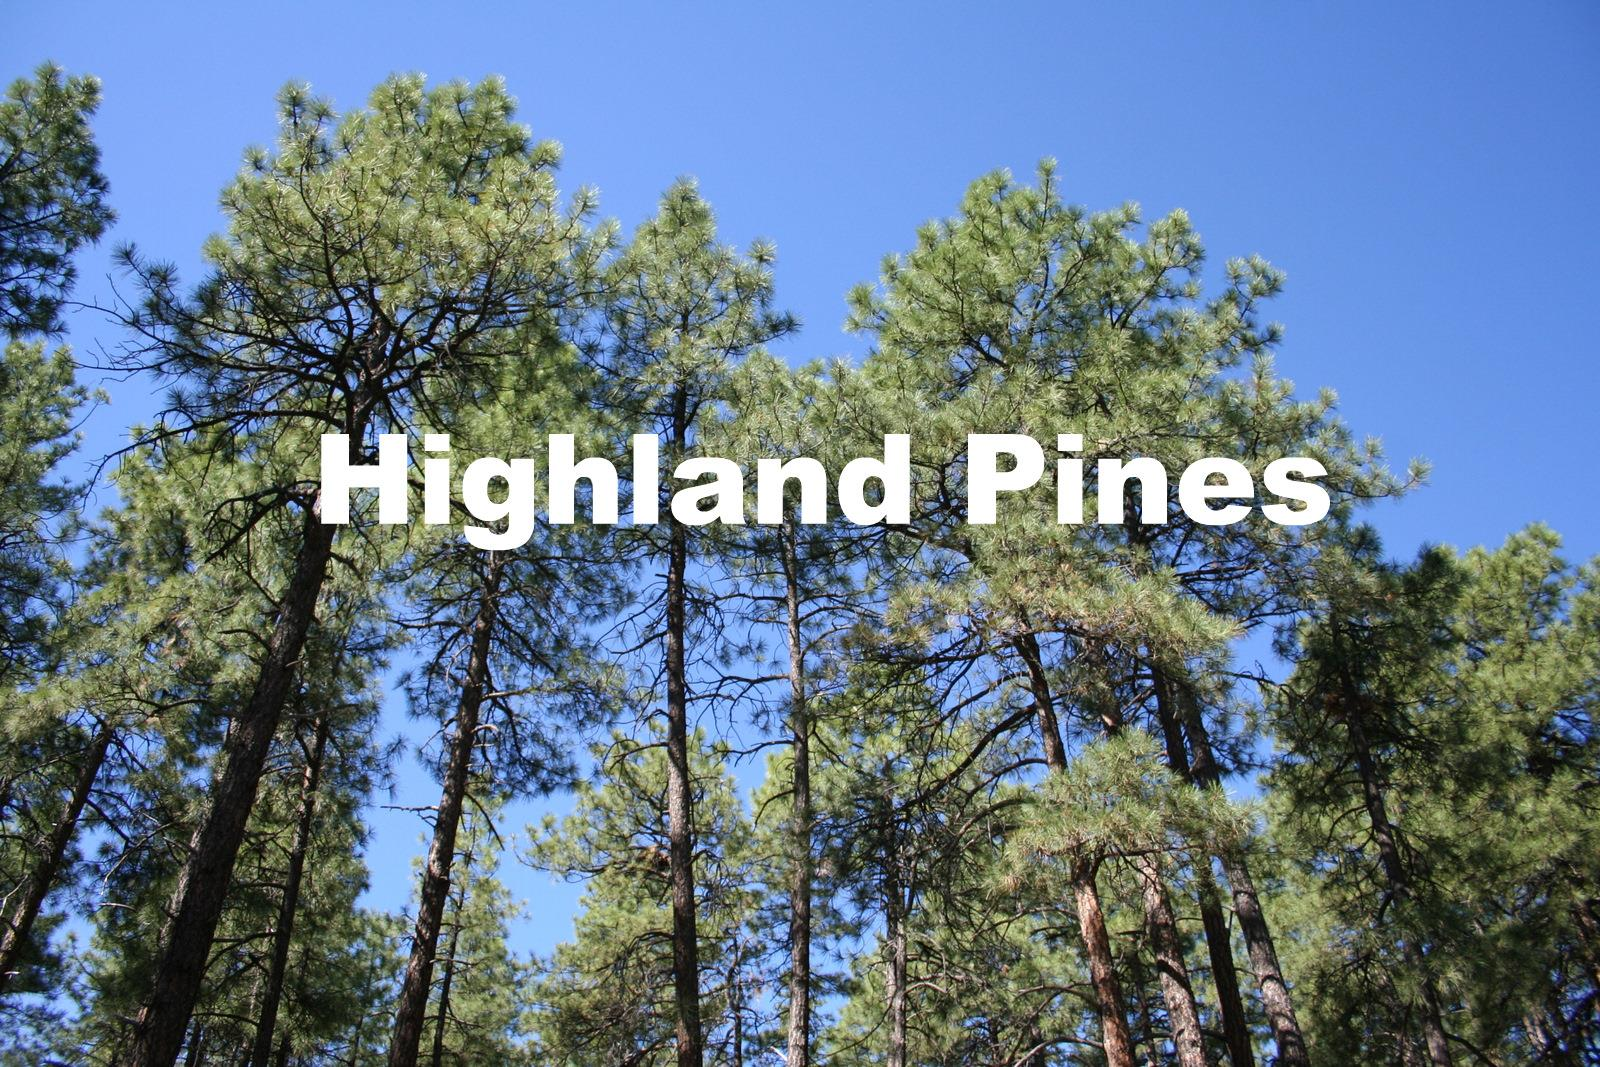 Highland Pines Prescott Arizona